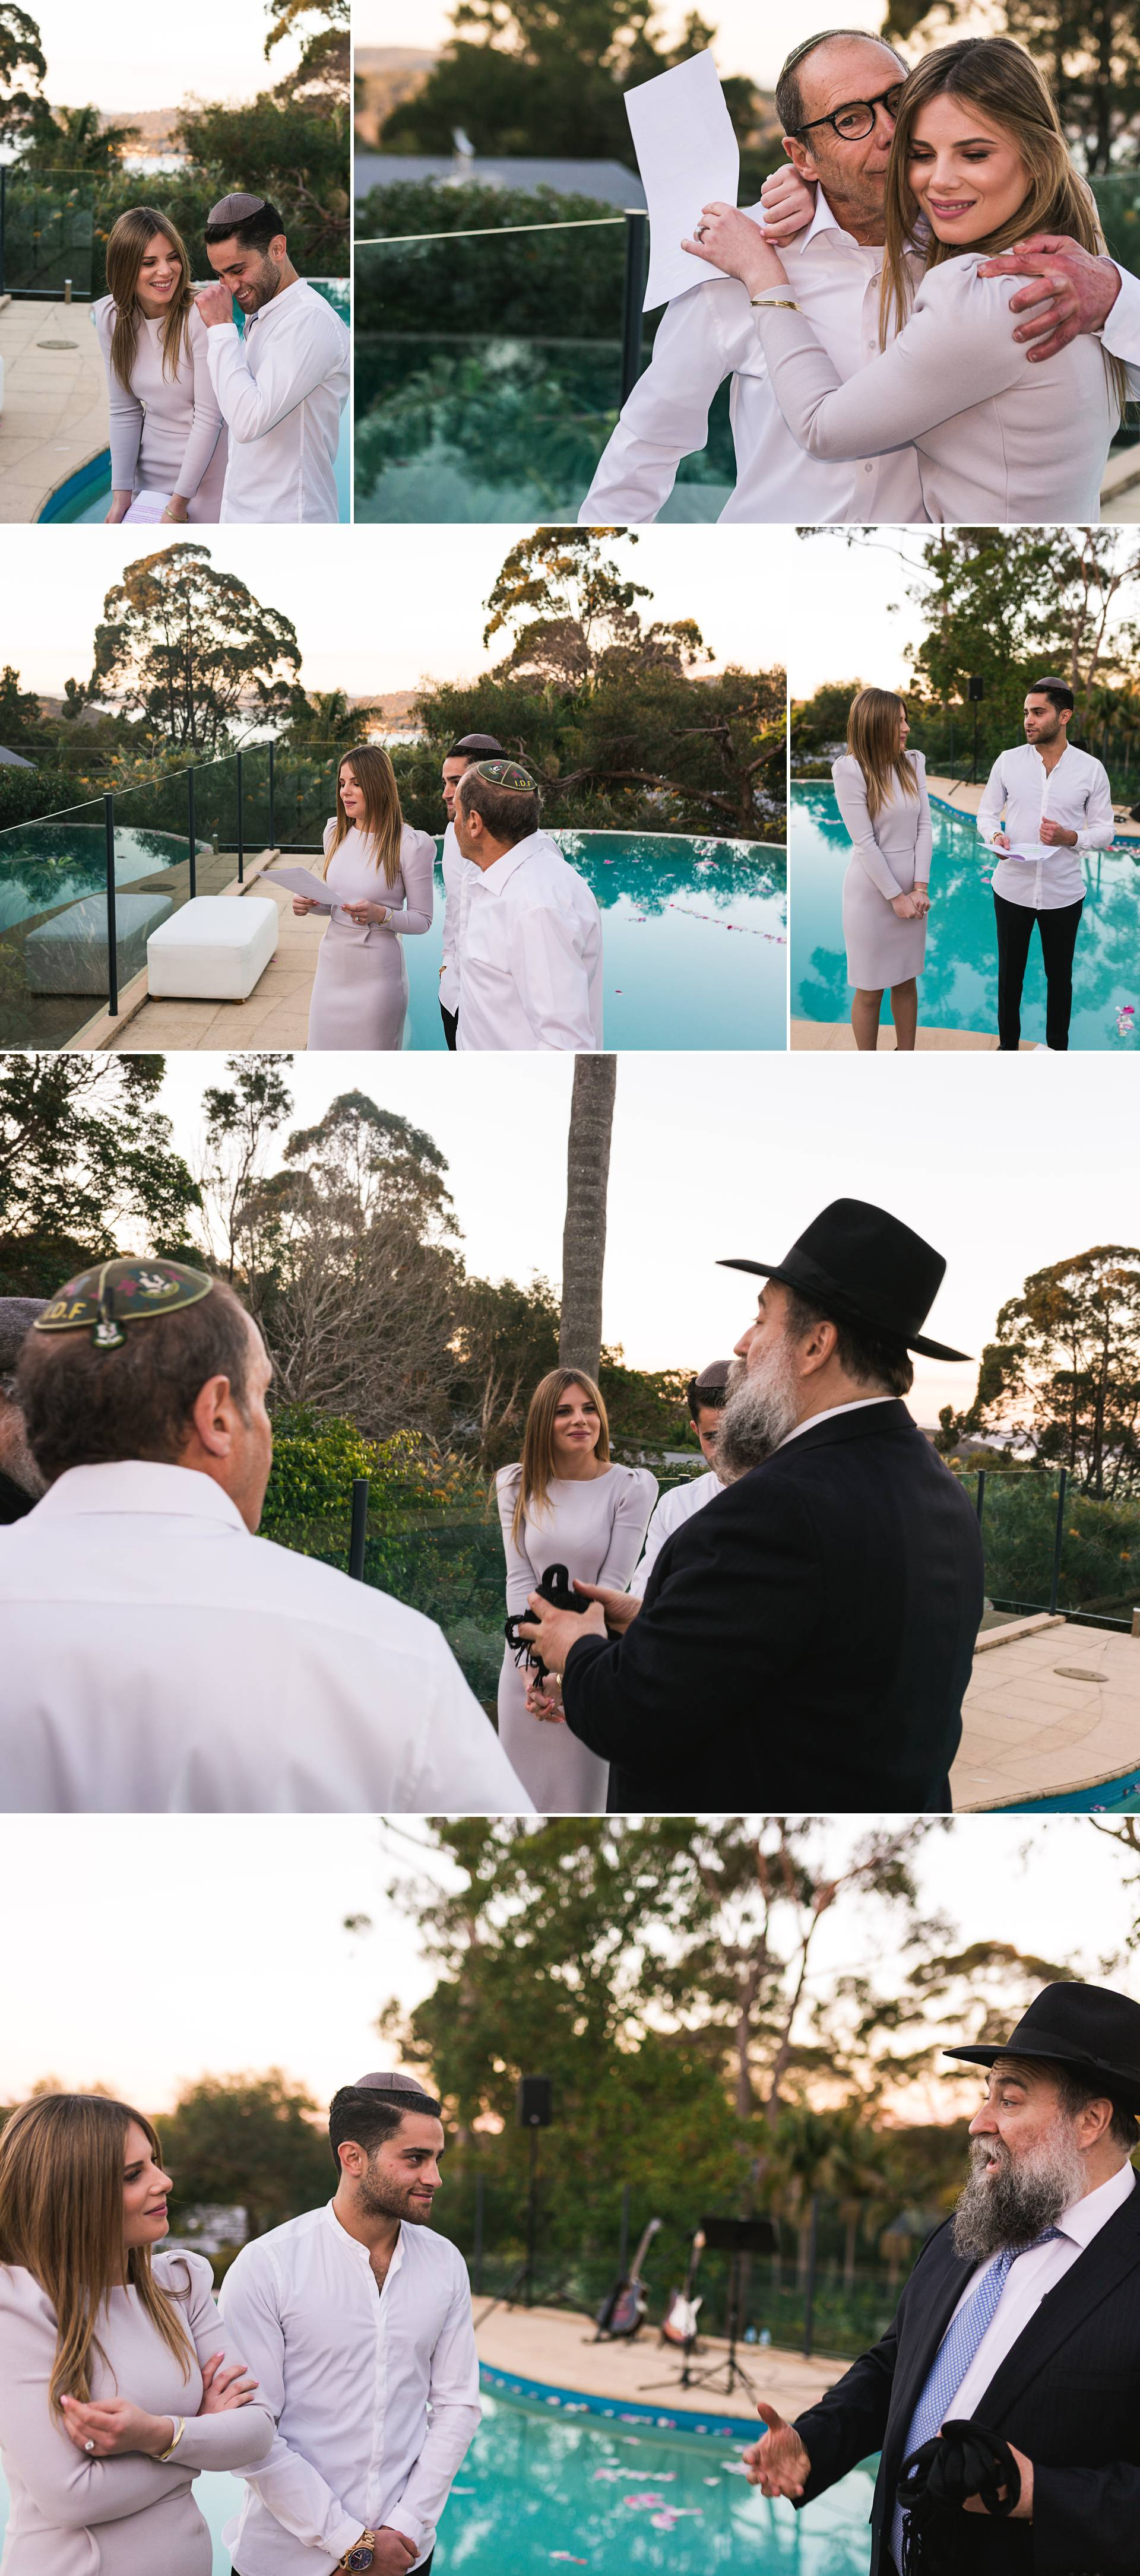 Jewish Engagement Party Photos